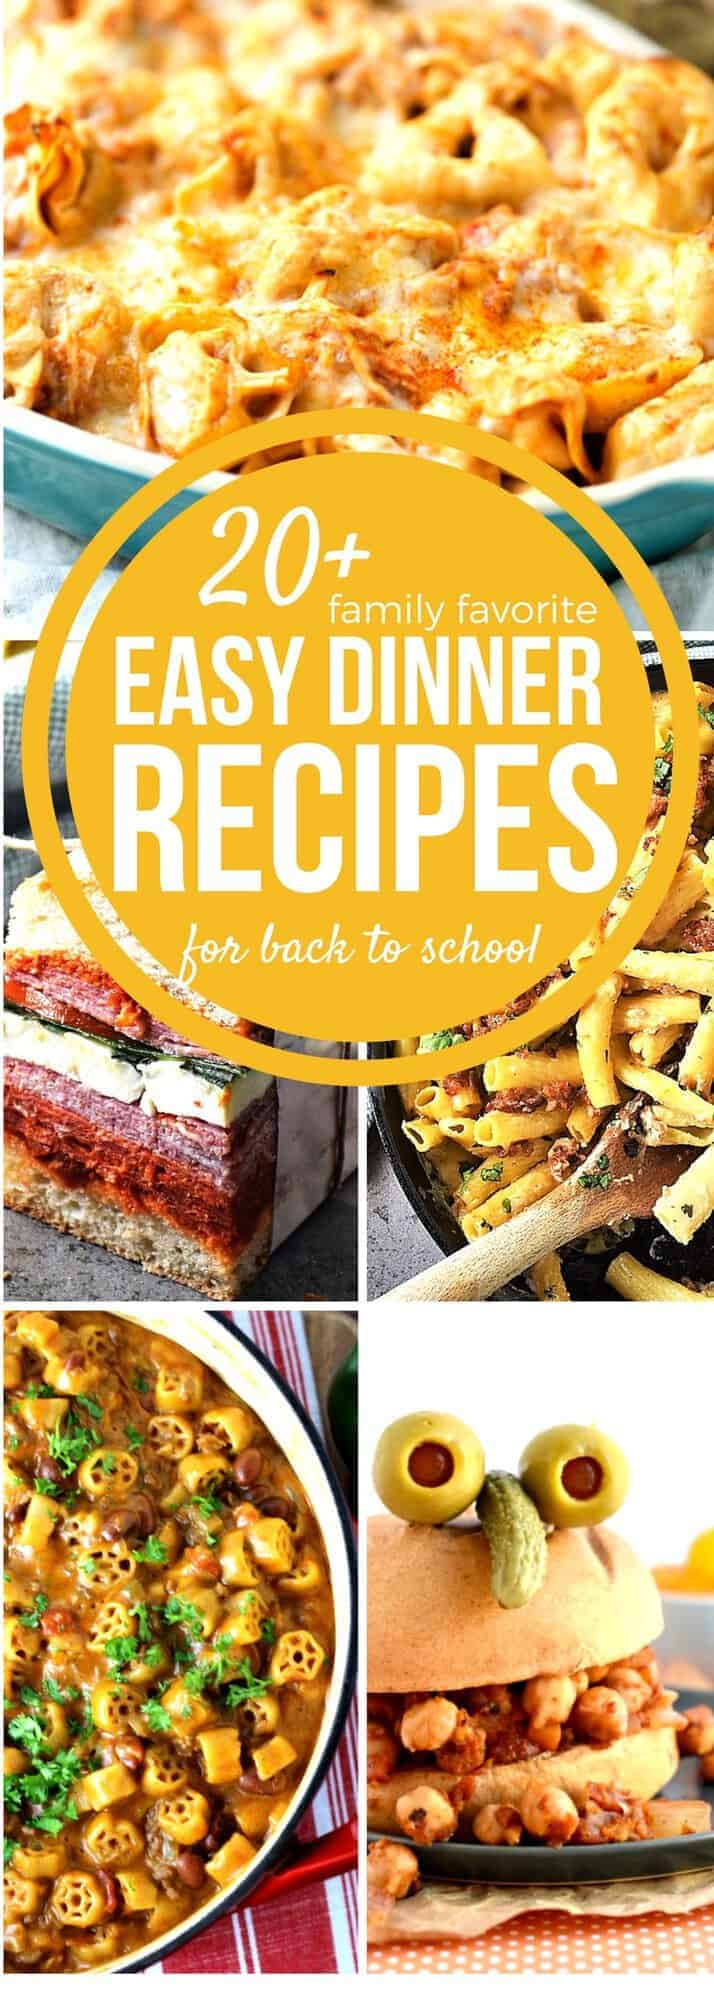 Stress less with our easy Back to School Dinners for your busiest weeknights! Save time, money, & energy with this delicious recipe collection filled with easy recipes the whole family will love! With over 20 easy recipes you will be able to menu plan for a whole month of easy weekday dinners!